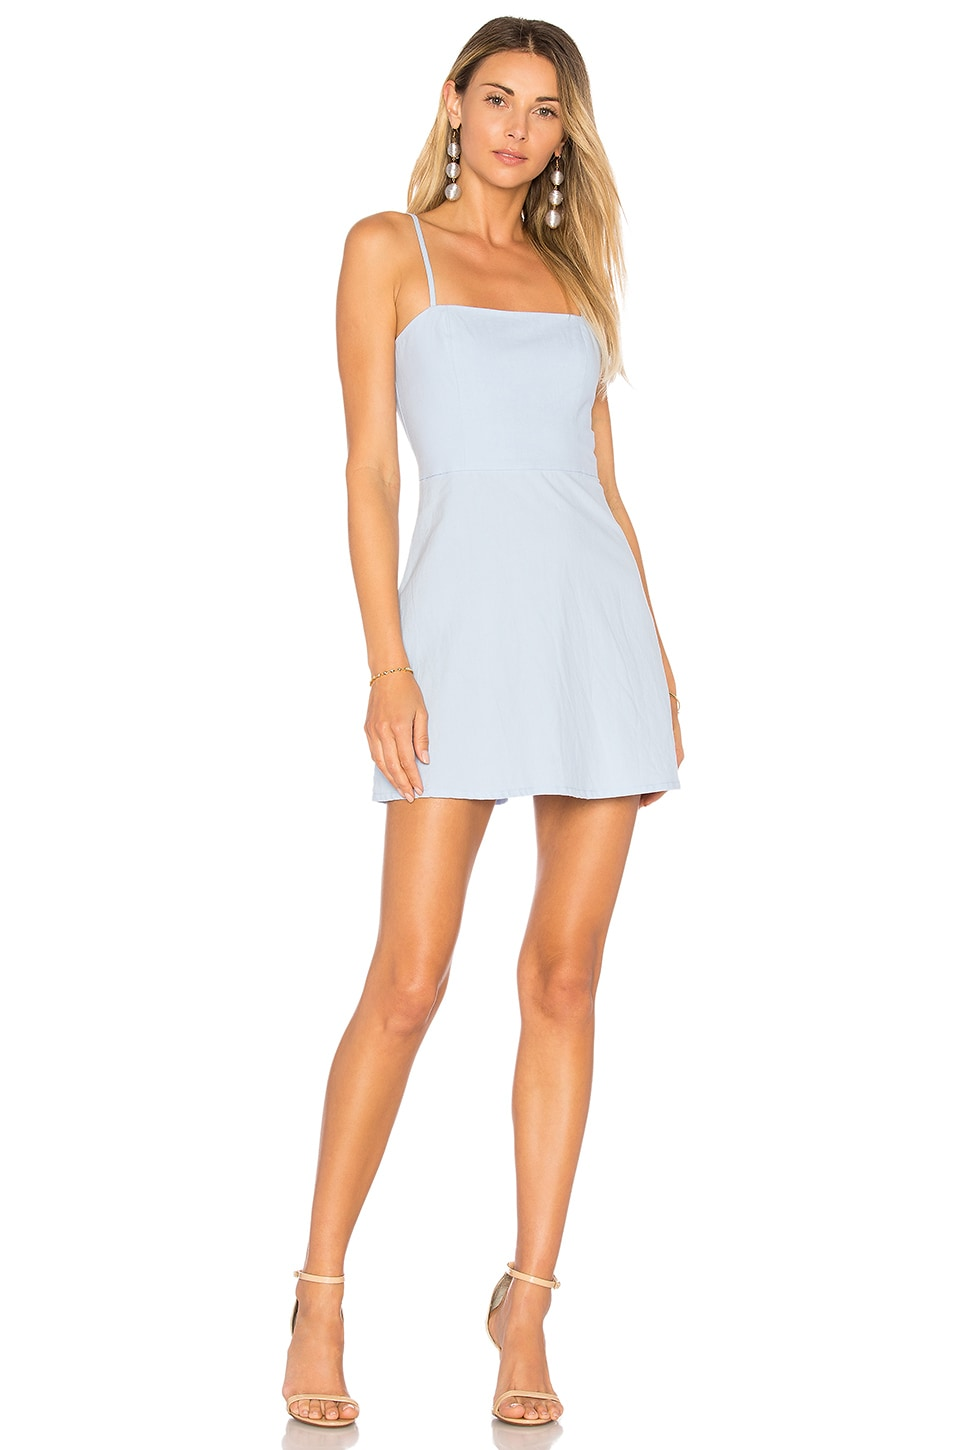 Vienna A-Line Mini Dress             superdown                                                                                                       CA$ 93.84 8